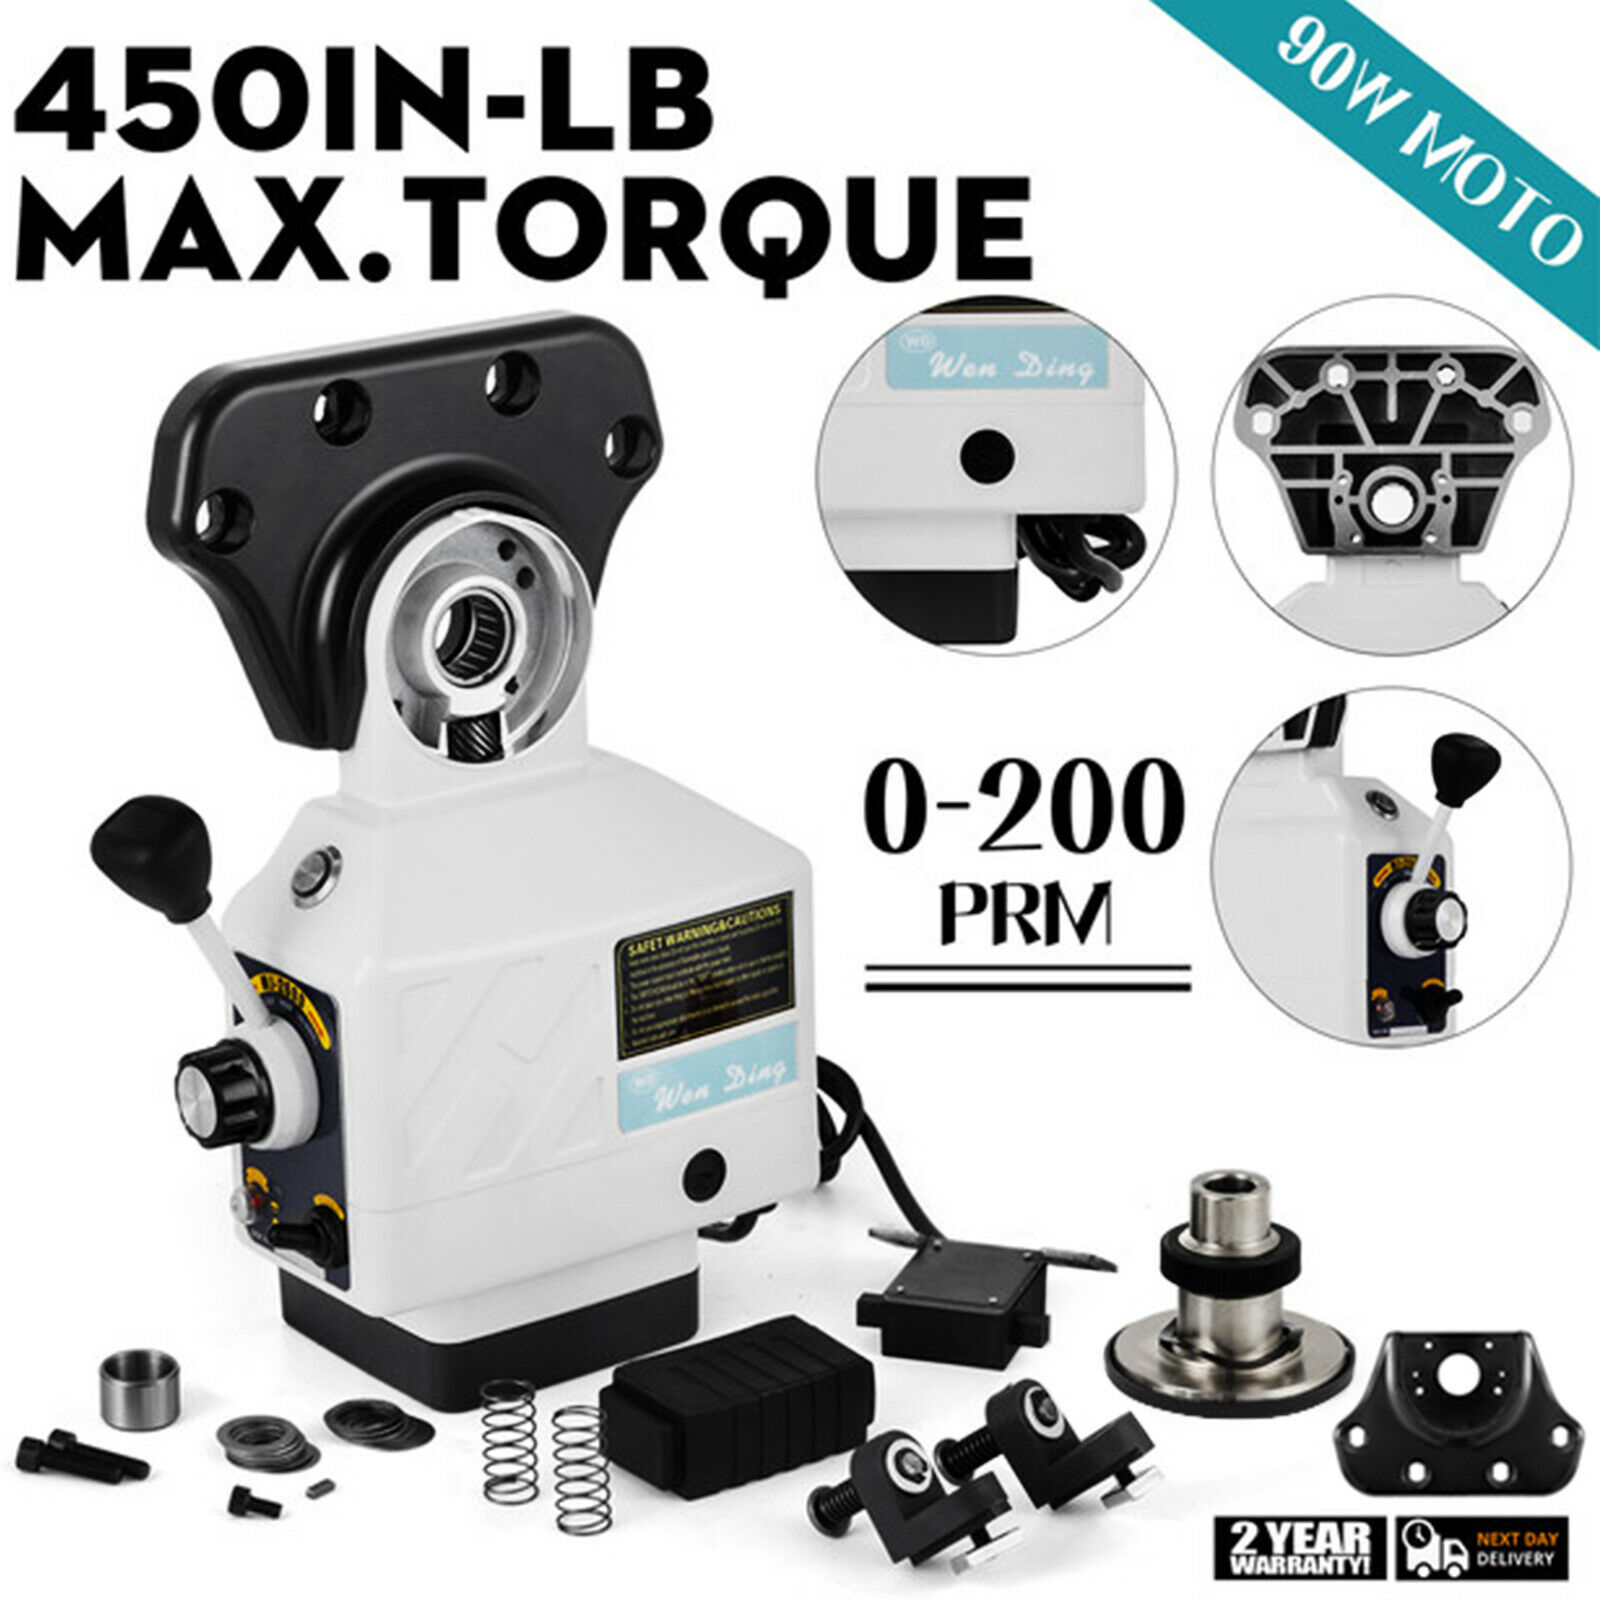 ALSGS 110V//220V Power Feed for Vertical Milling Machine X Y Axis AL-310SX os12